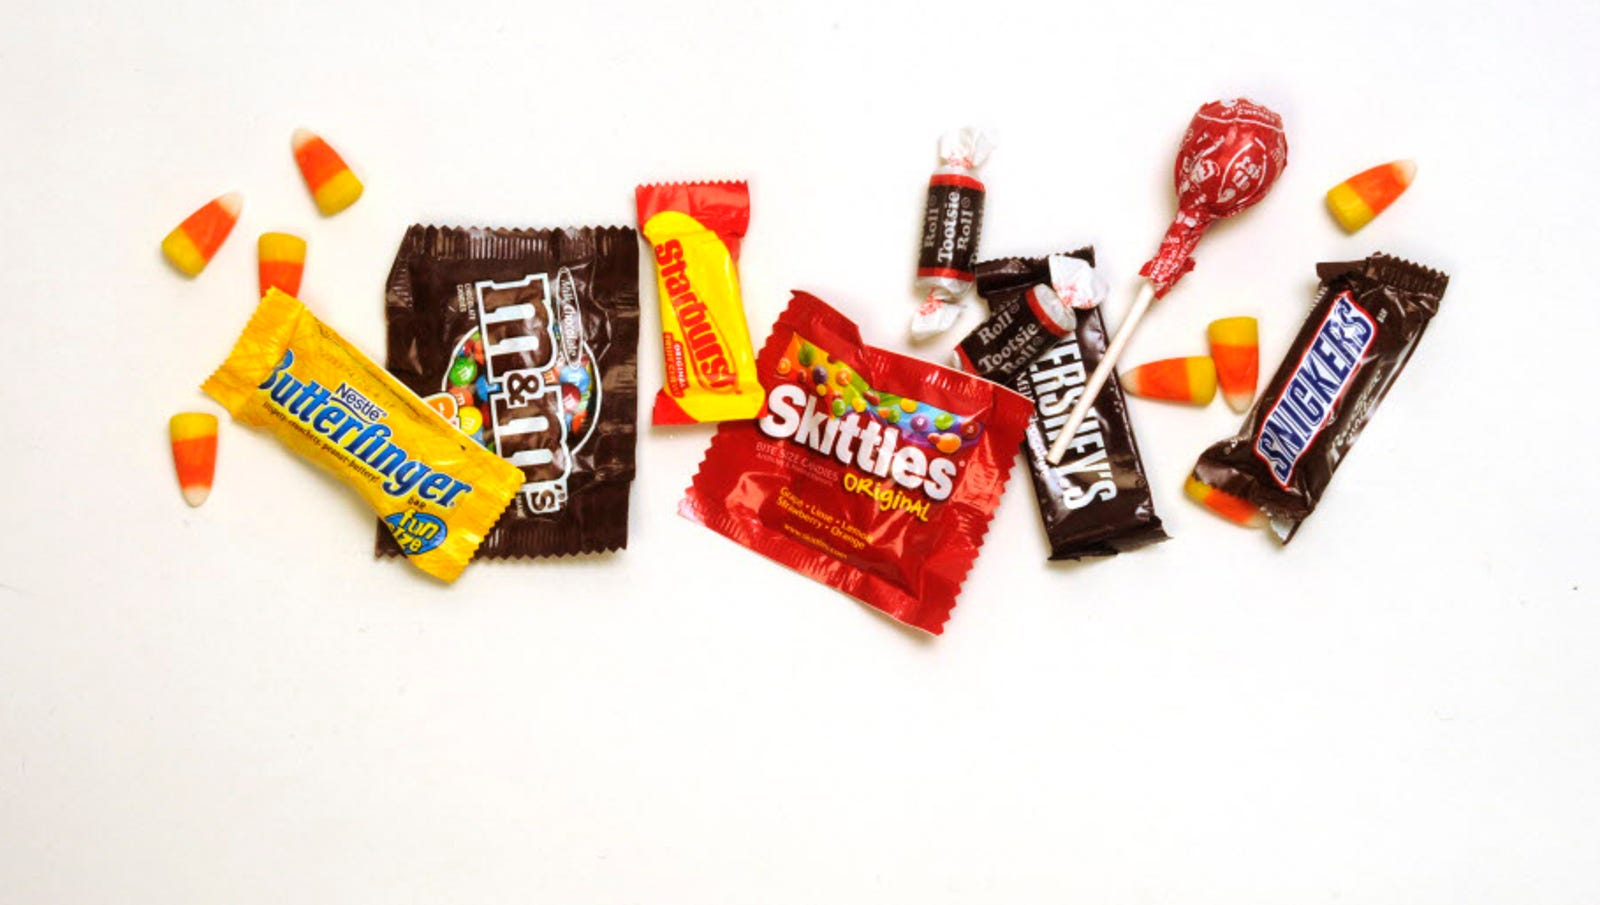 pins, needles reportedly found in halloween candy